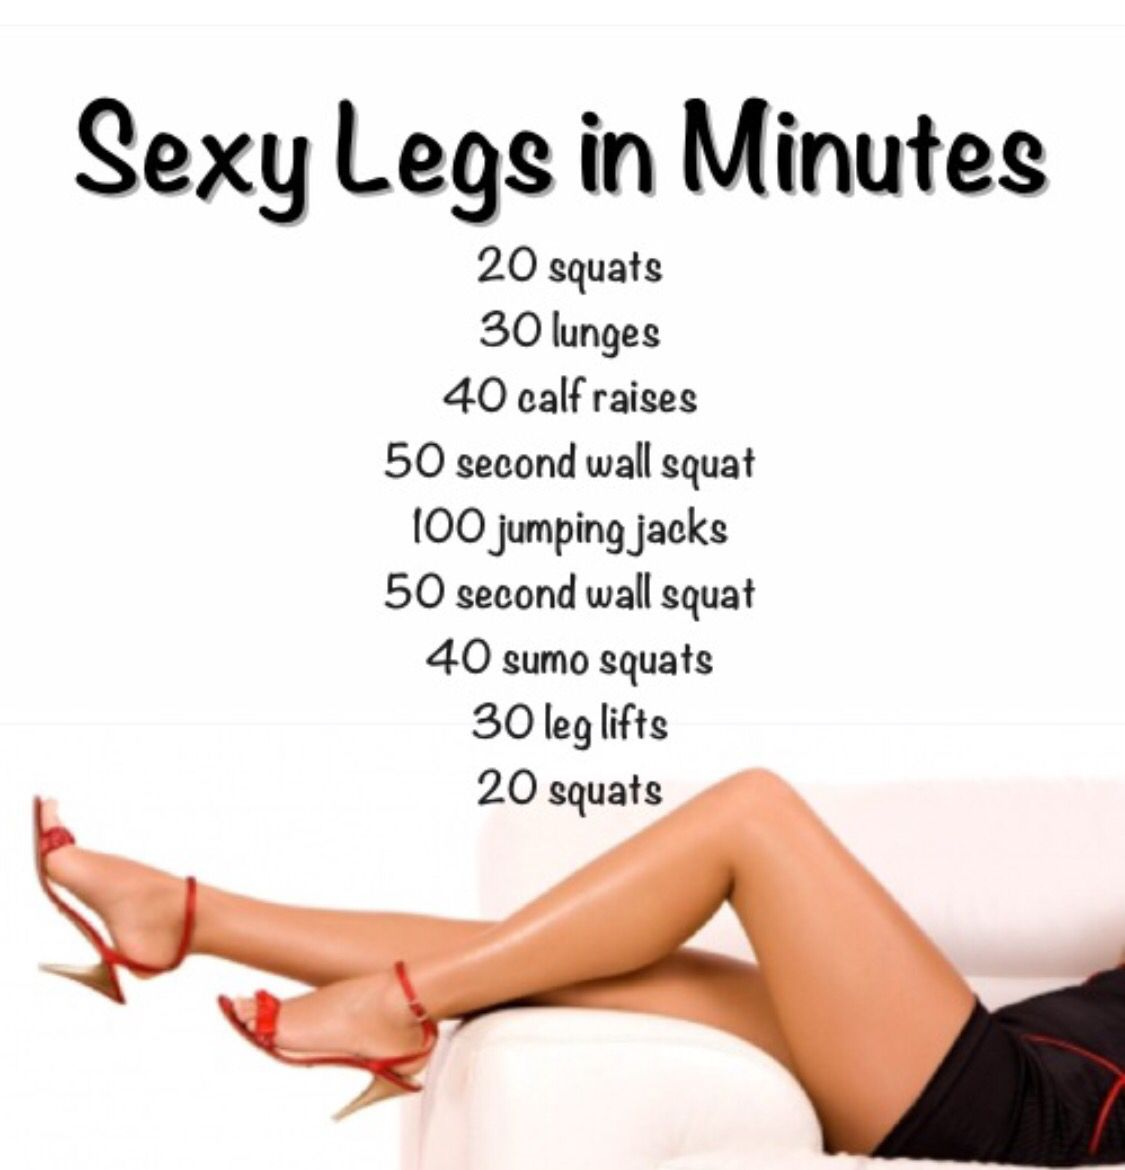 How to get sexy legs photos 99